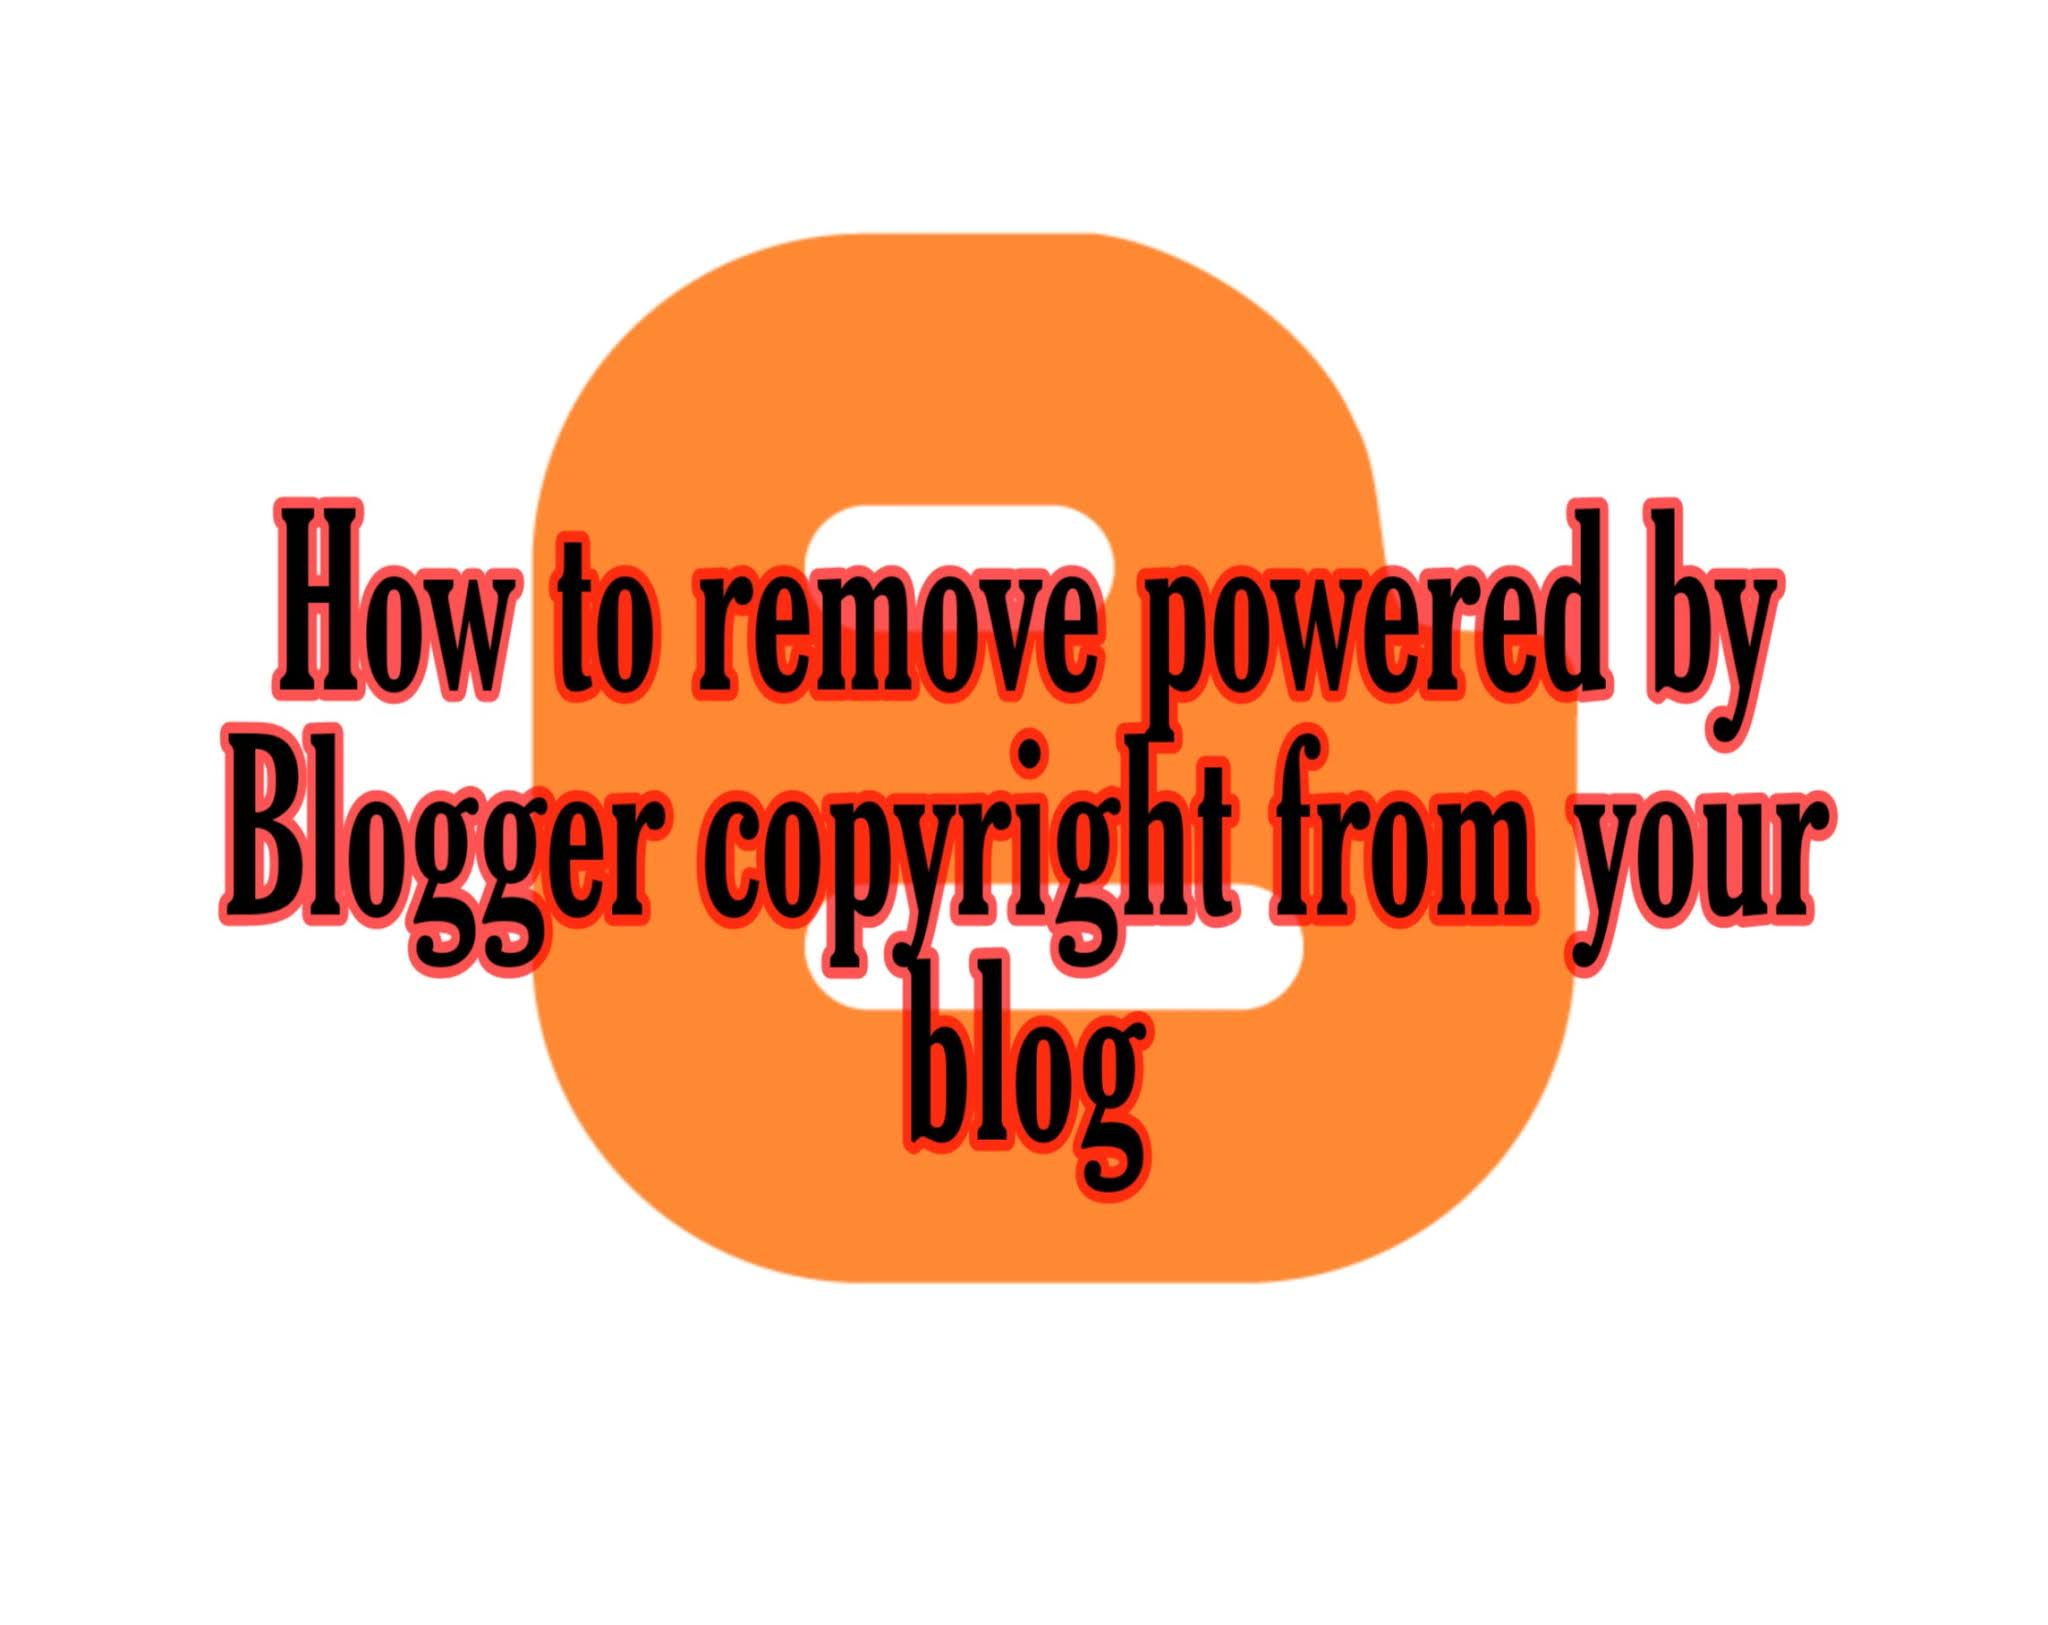 How to, remove powered by Blogger, copyright, in your blog